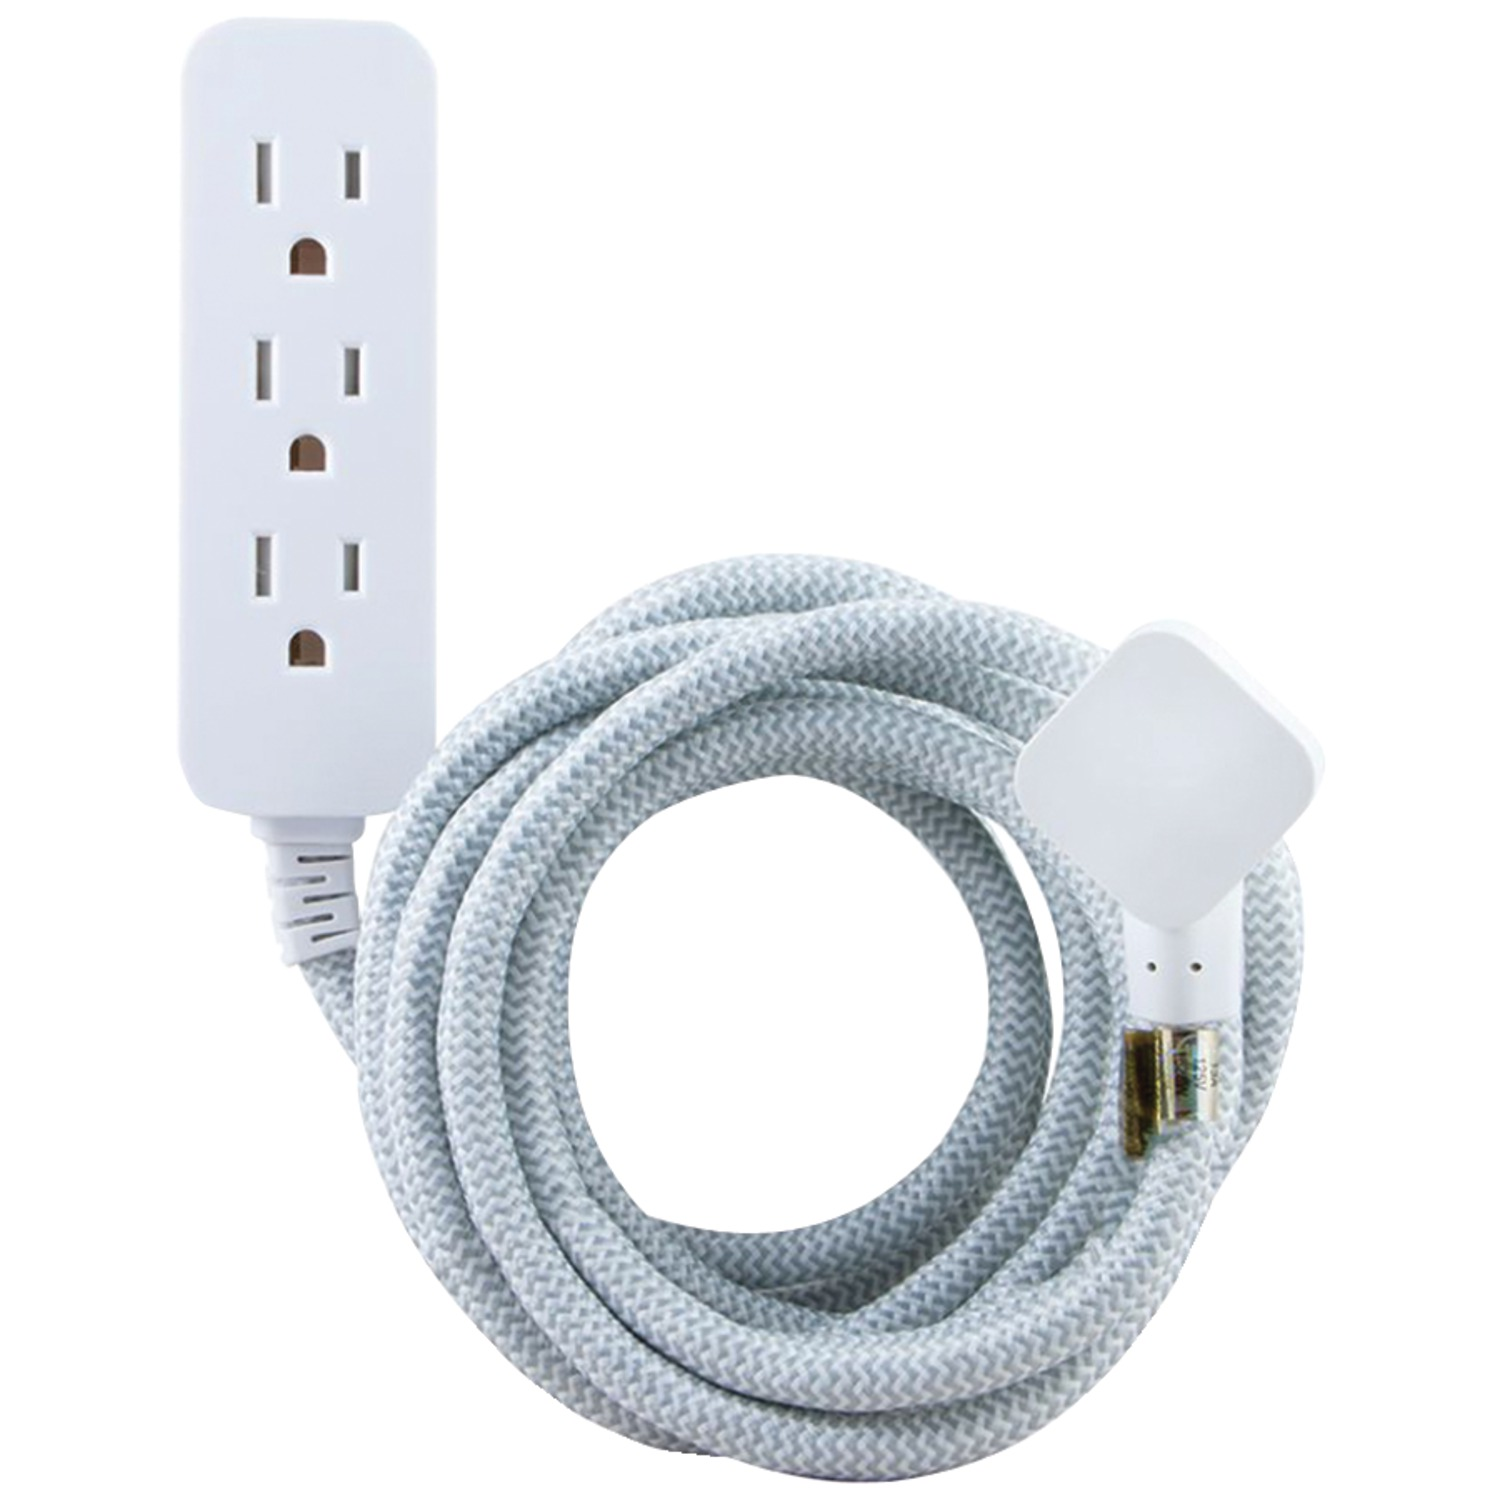 Cordinate 37592 3-outlet Grounded Surge Protector, 10ft Cord